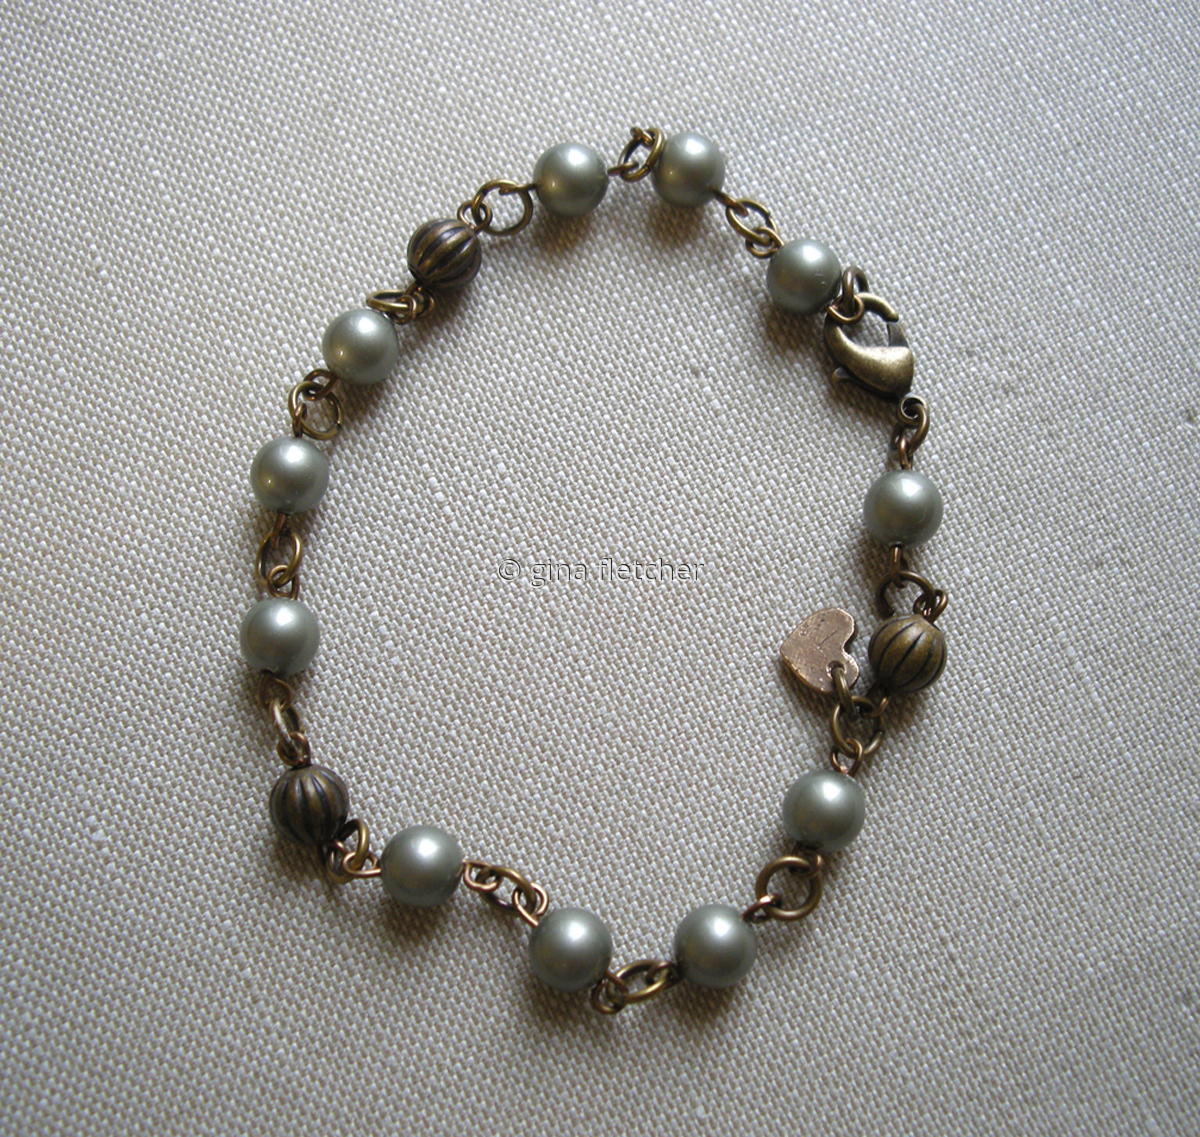 pearl bracelet . . . #006 (large view)